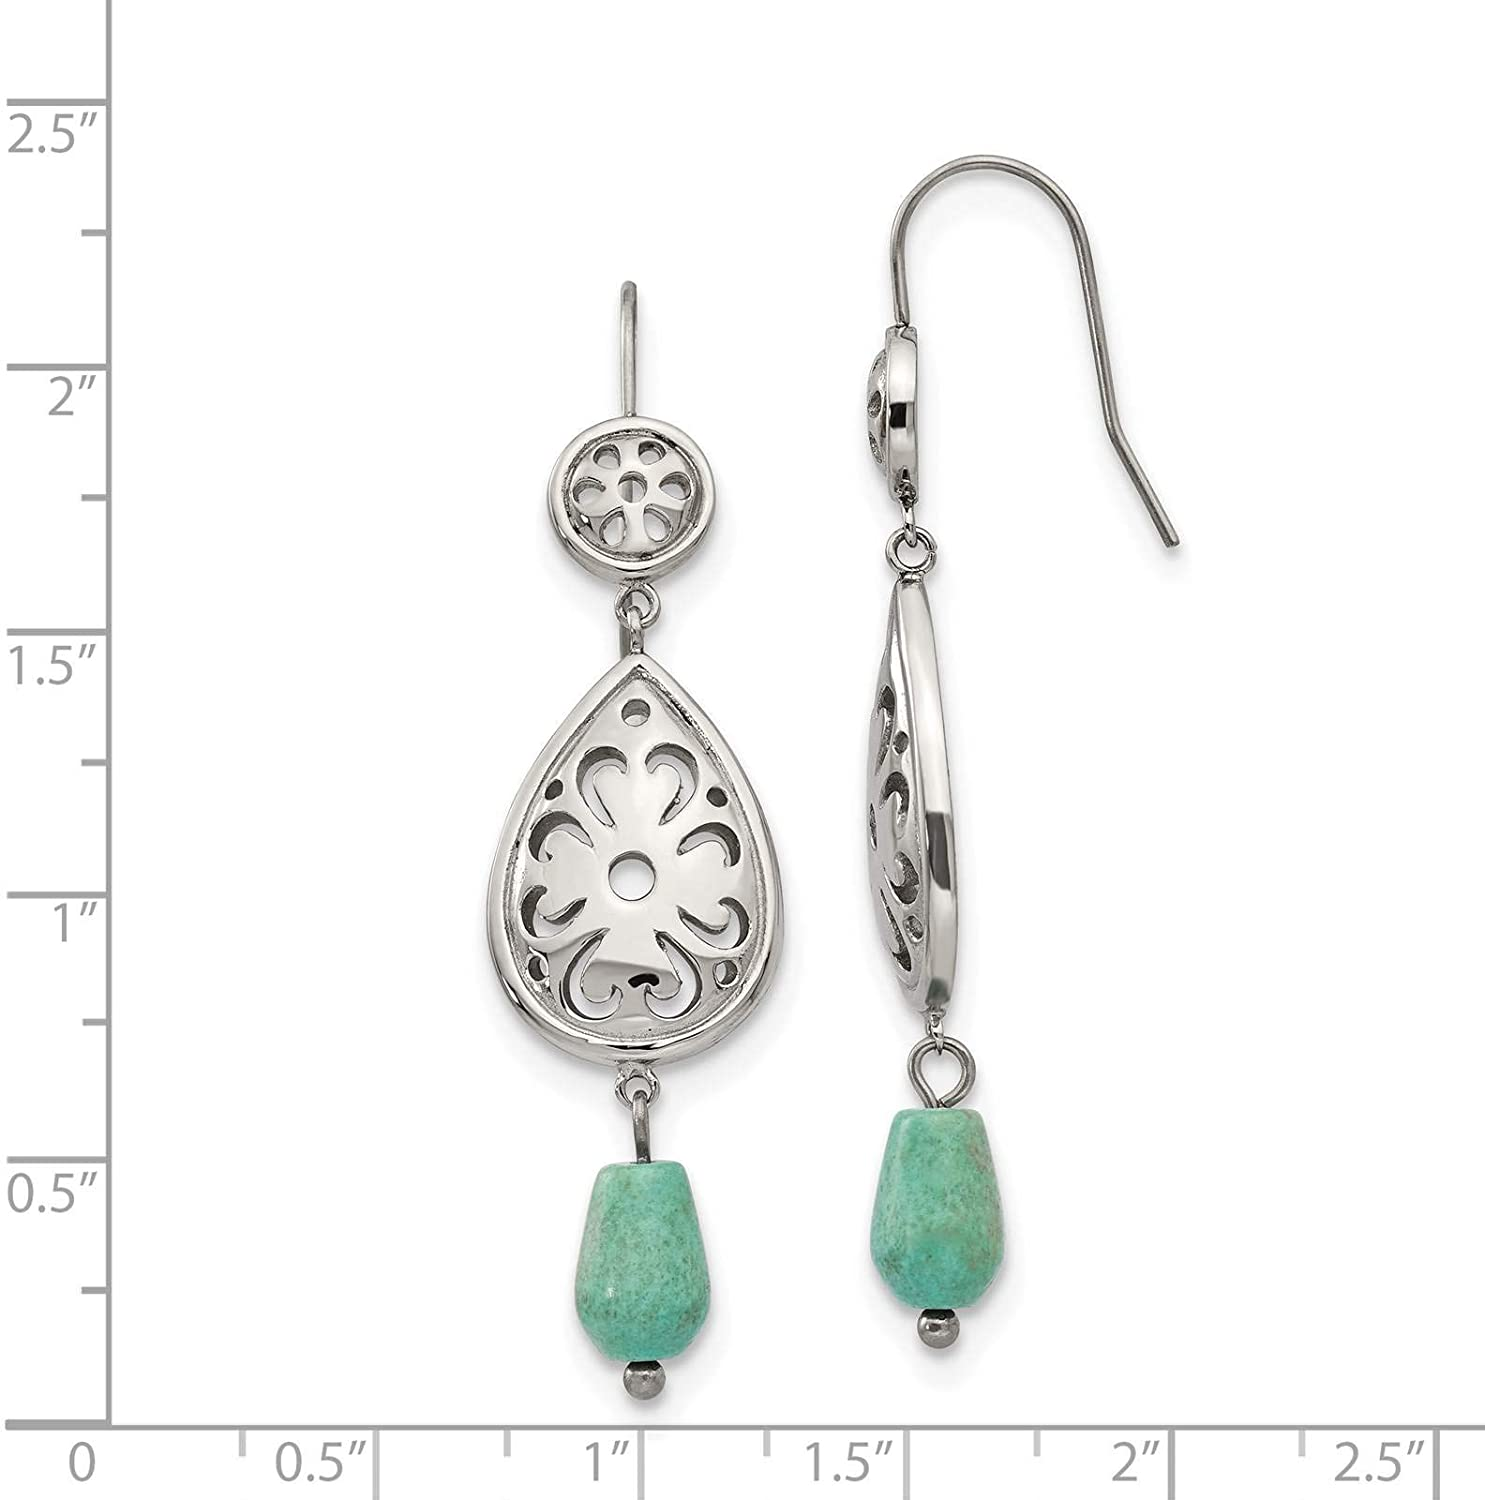 Stainless Steel Polished Teardrop Simulated Turquoise Dangle Earrings